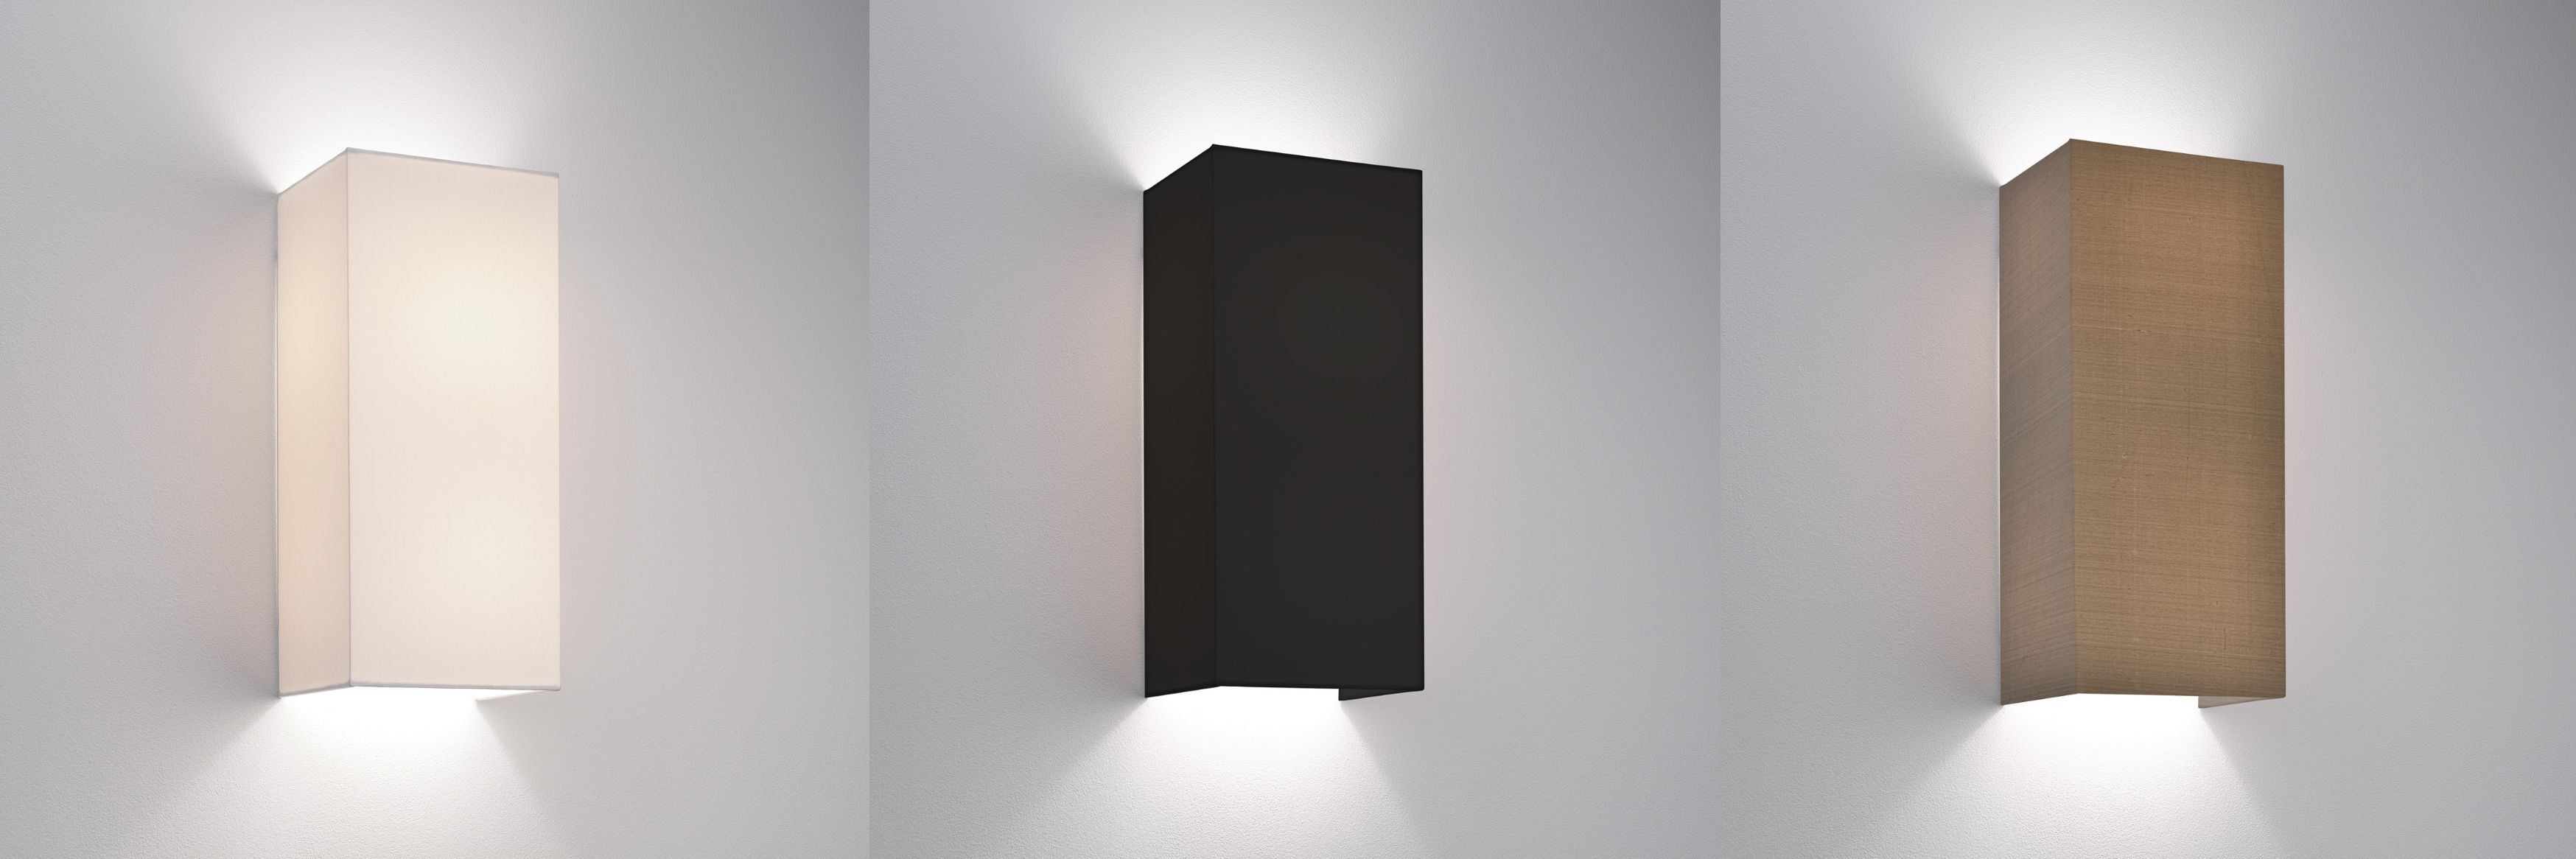 Astro chuo 380 fabric wall light shade 2 x 60w e27 white black astro chuo 380 fabric wall light shade 2 x 60w e27 white black oyster aloadofball Image collections